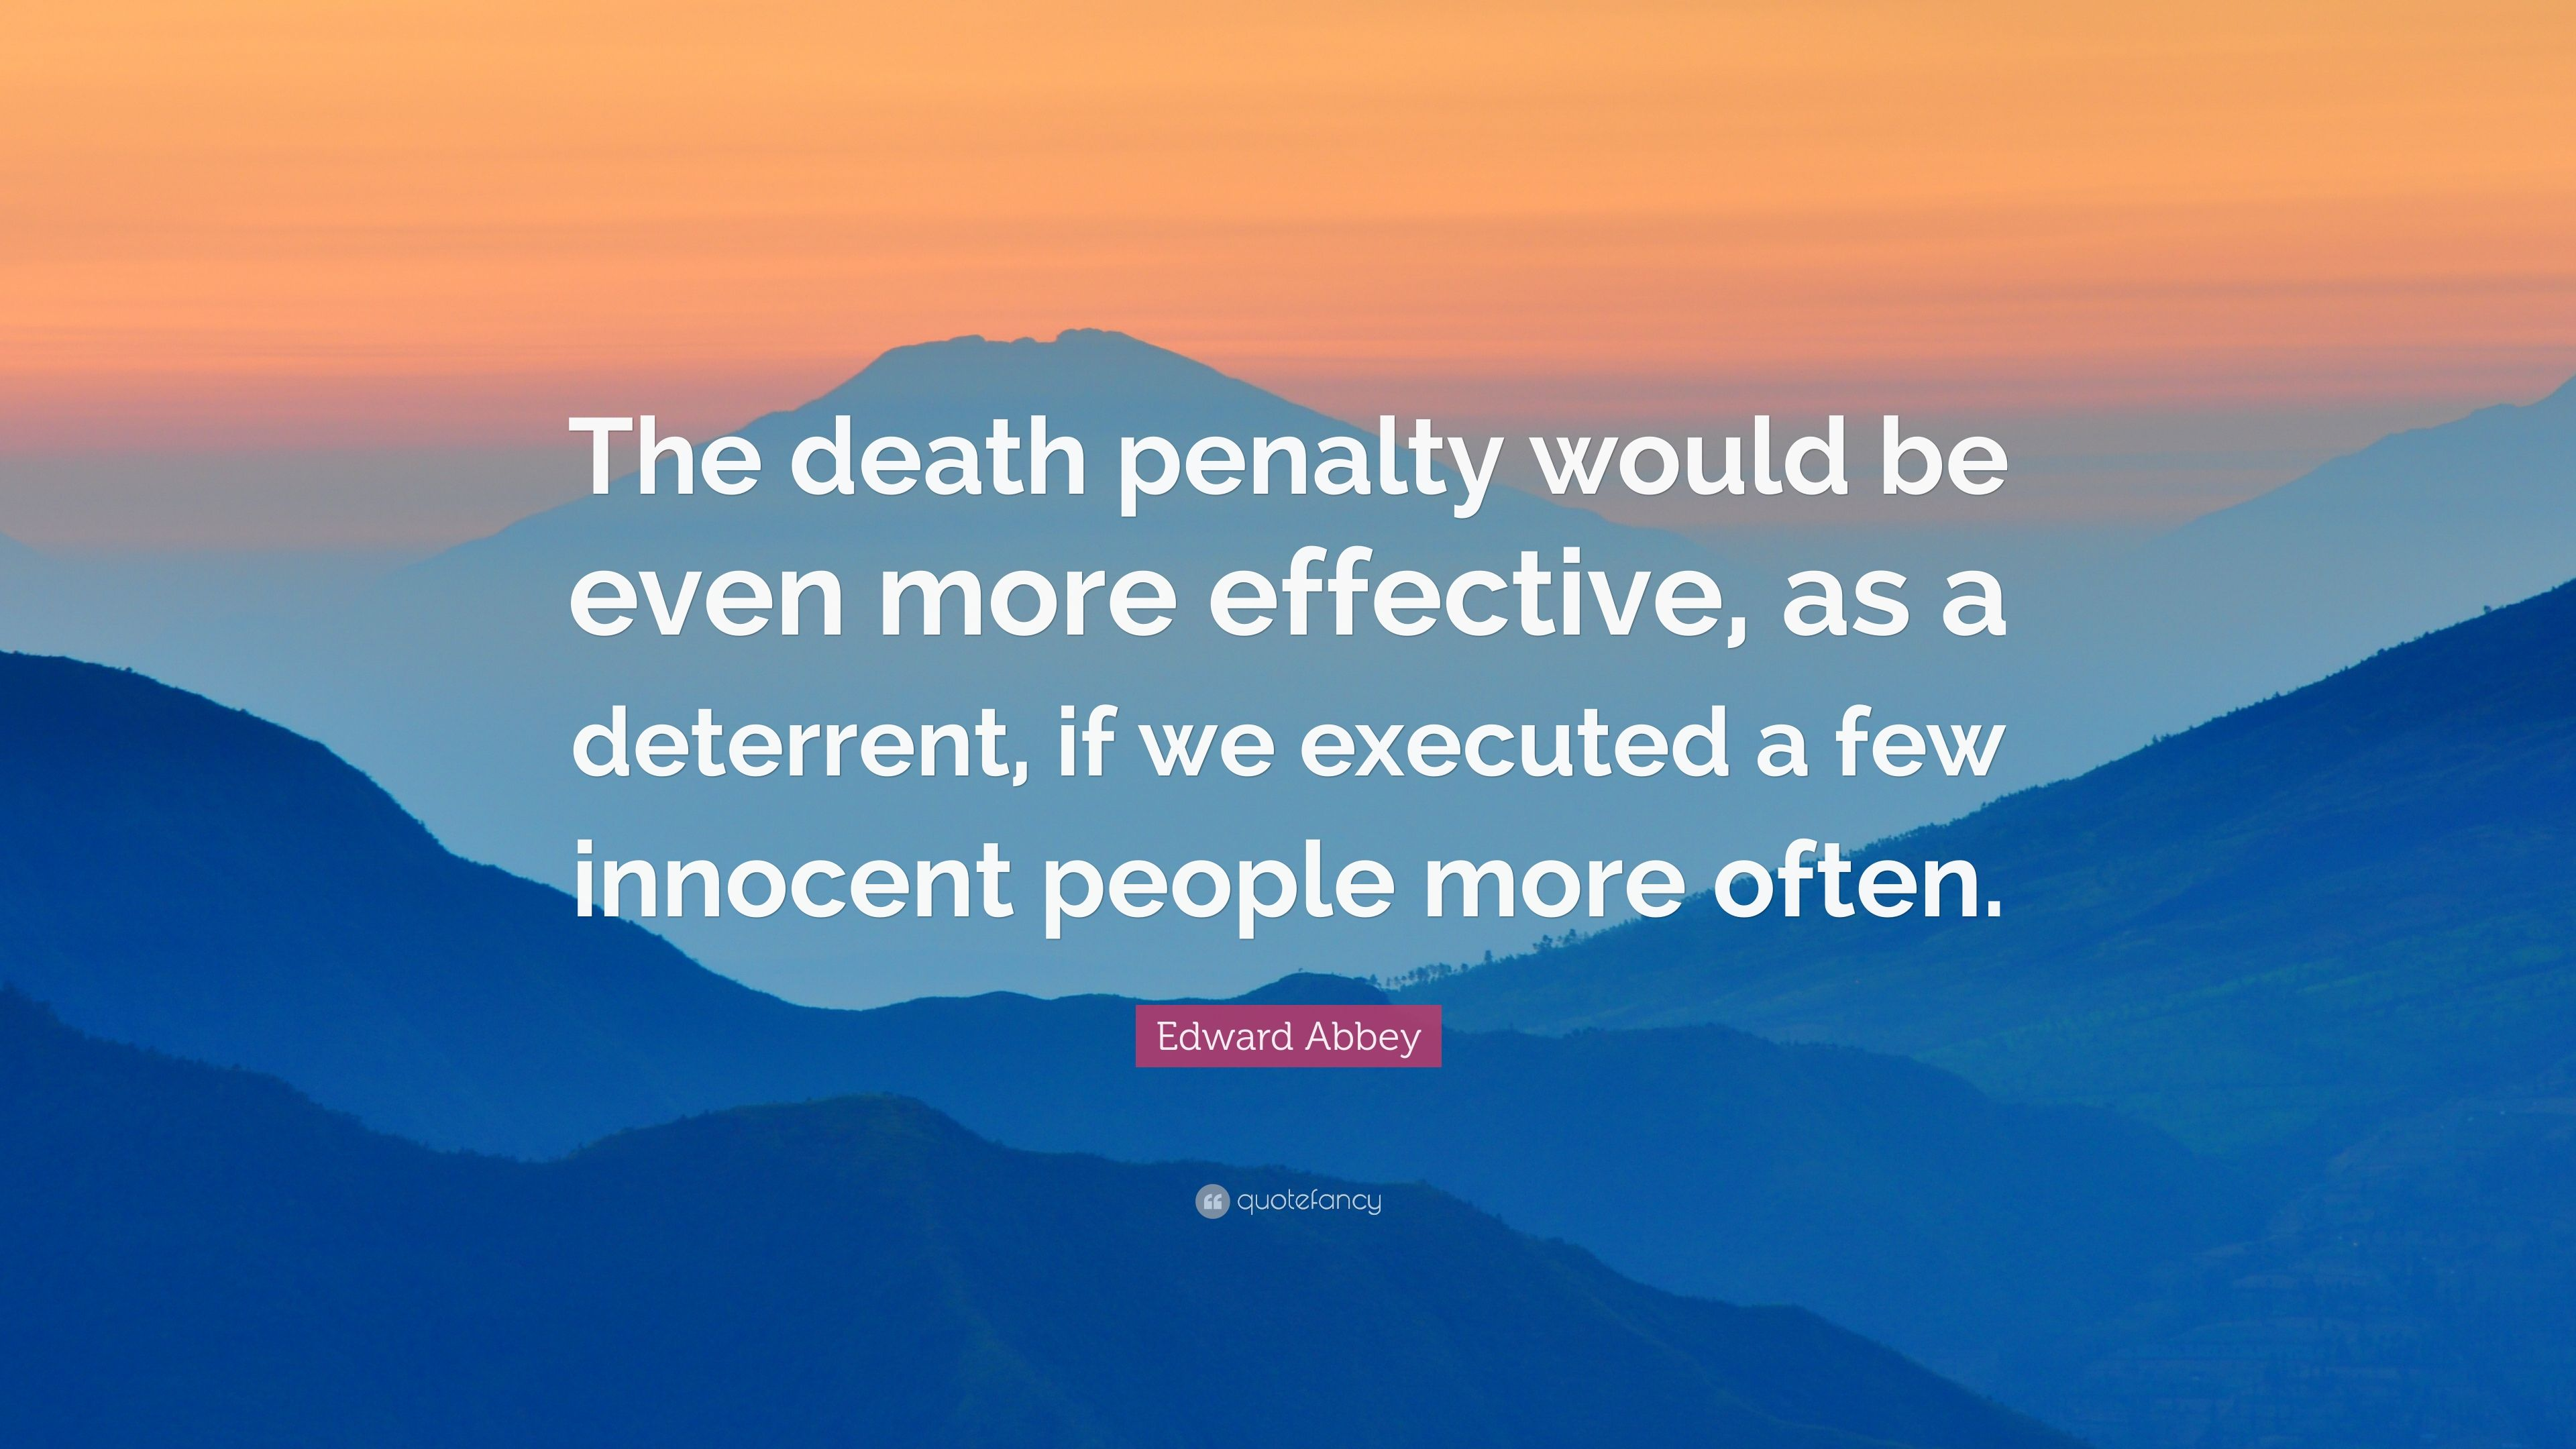 is the death penalty effective One factor that is known to make the death penalty more effective as a crime deterrent is the rate of executions, with fast and frequent executions.